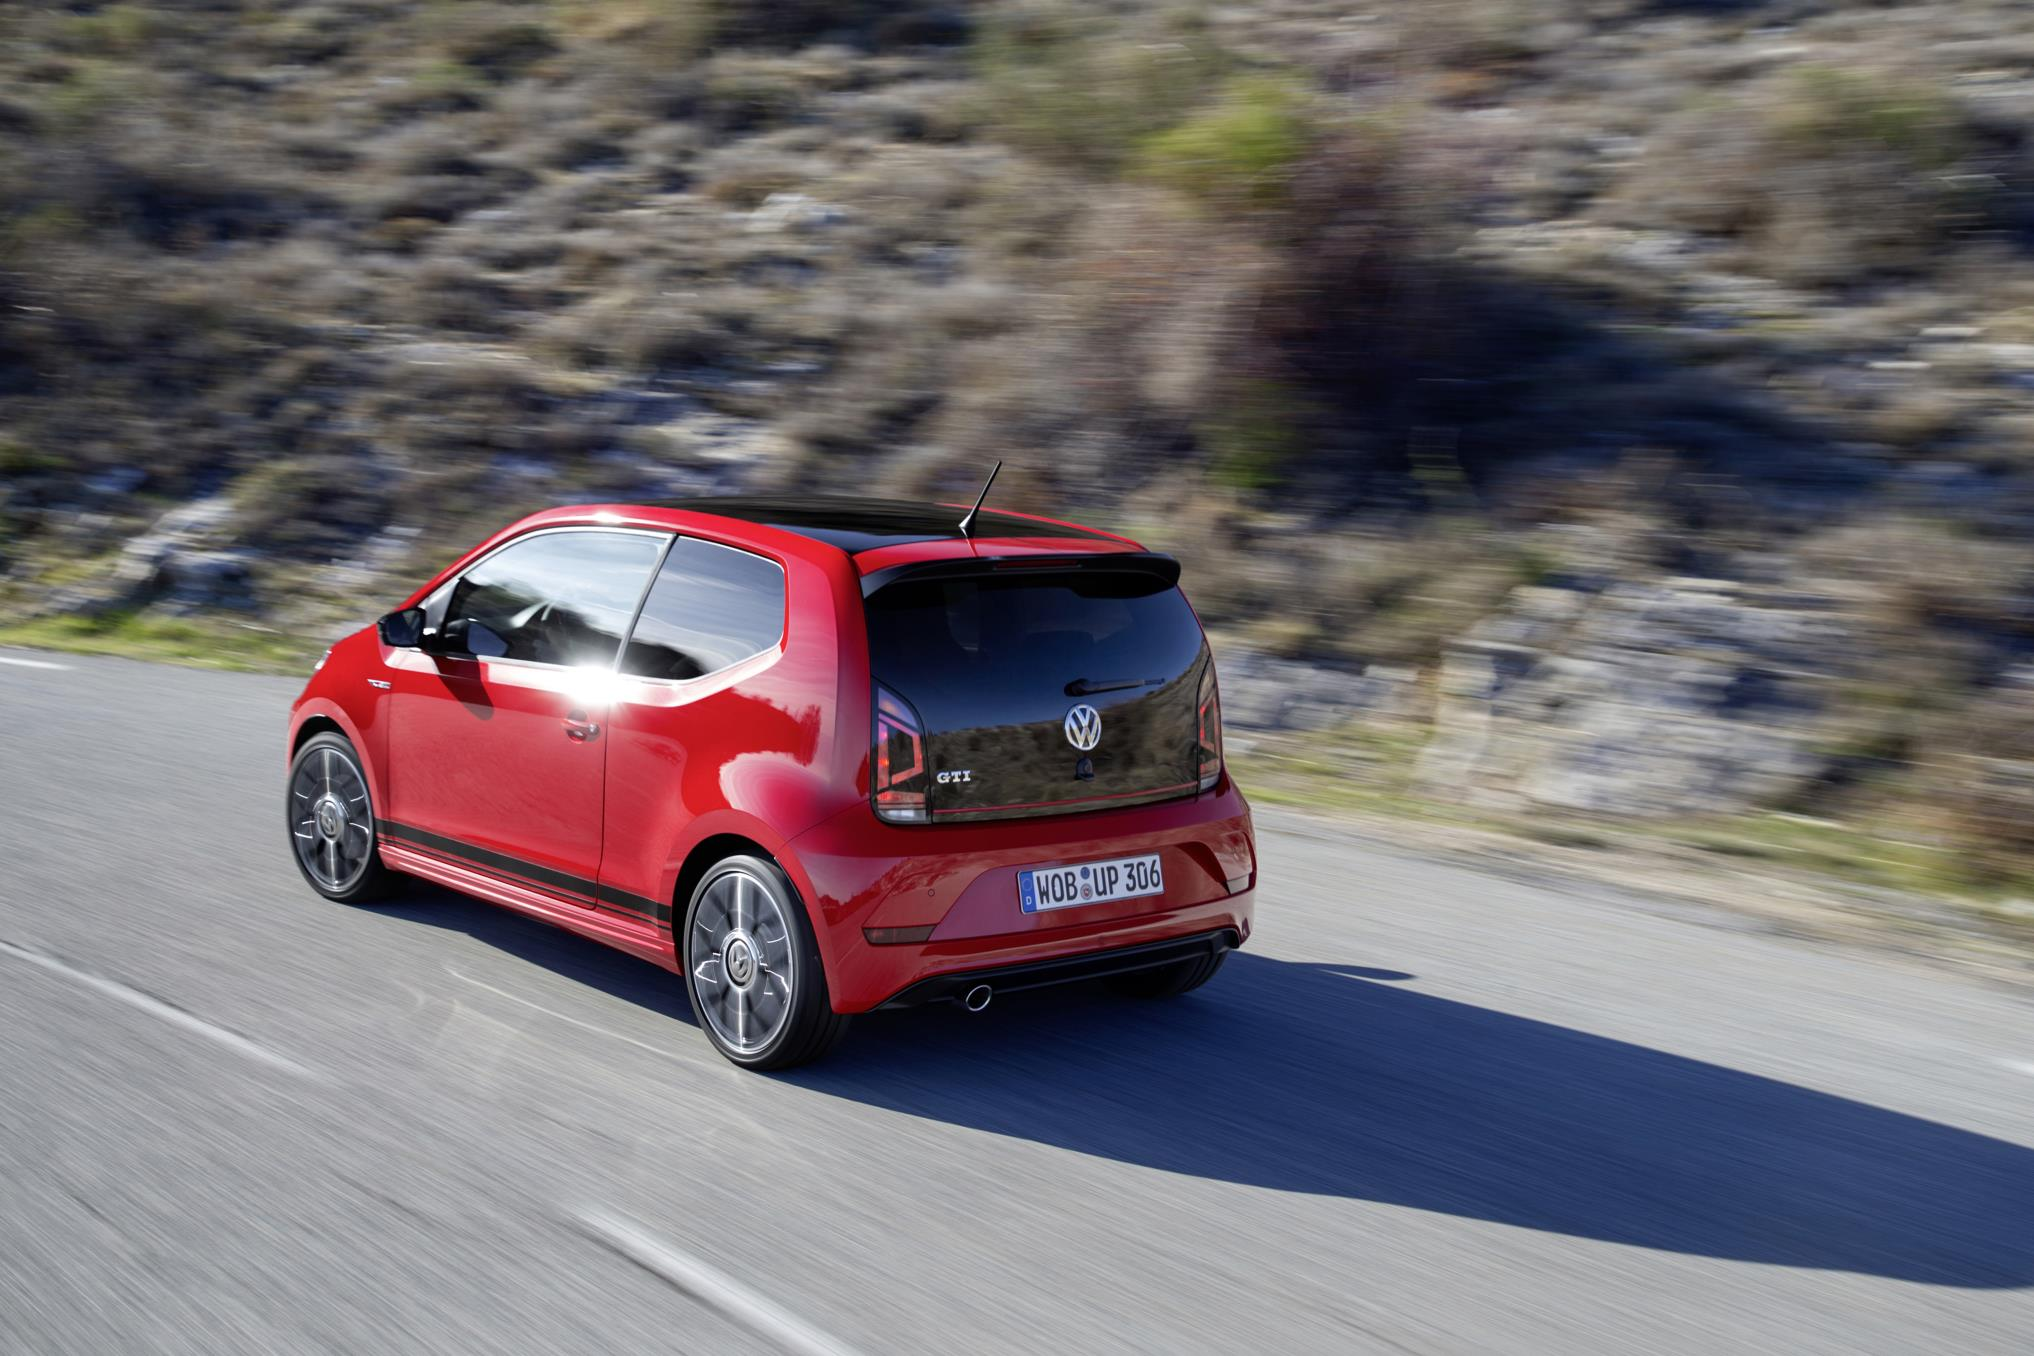 Red Volkswagen up! speeding along on right hand-side of the road